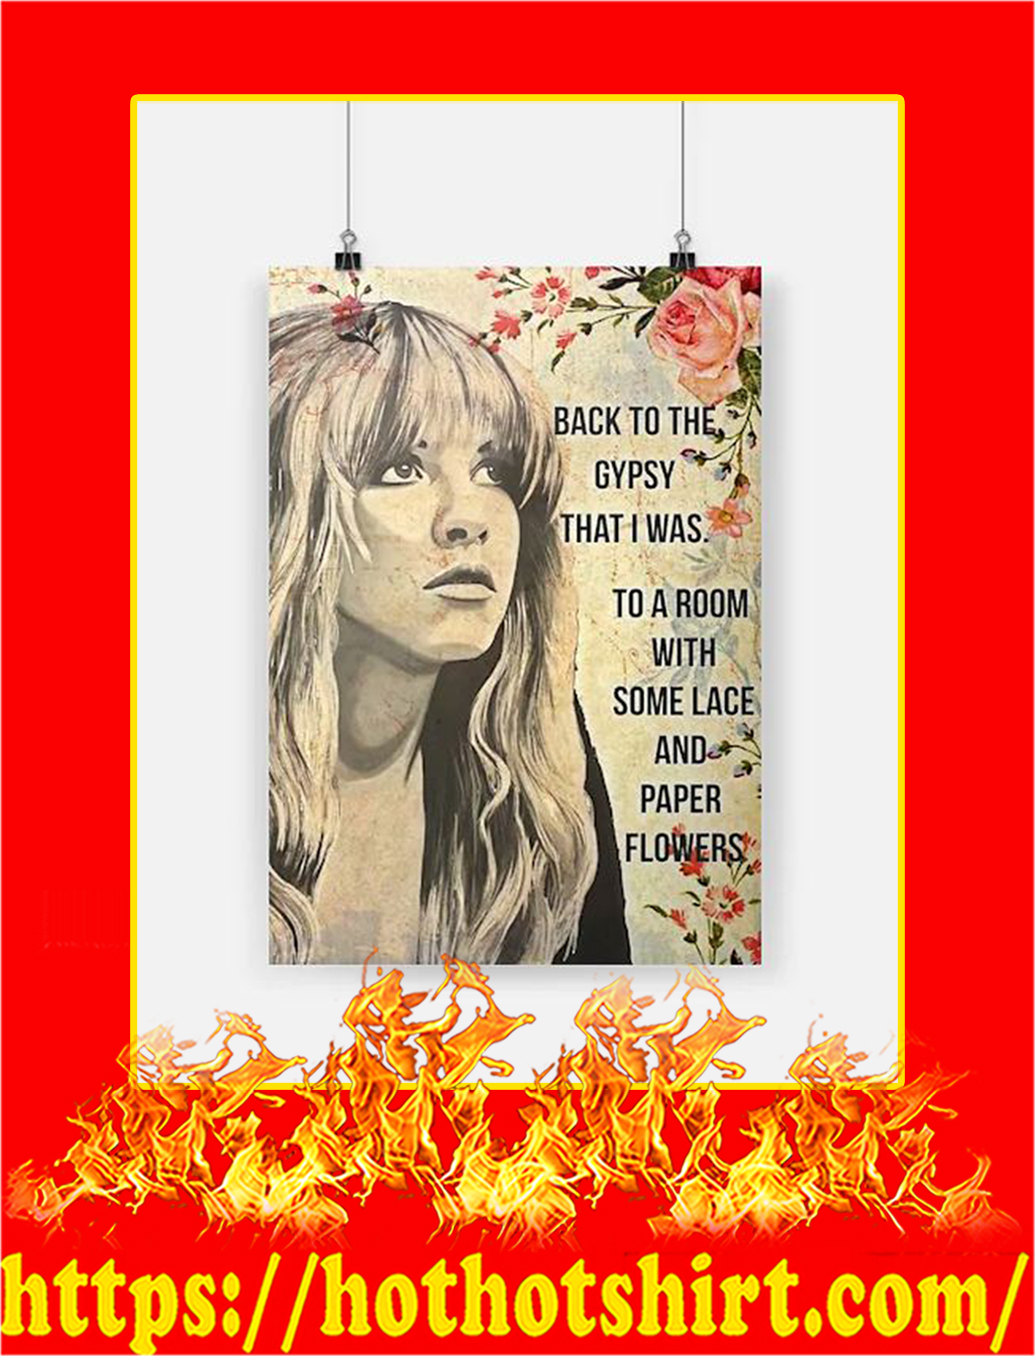 Stevie Nicks Back To The Gypsy That I Was To A Room With Some Lace And Paper Flowers Poster - A3